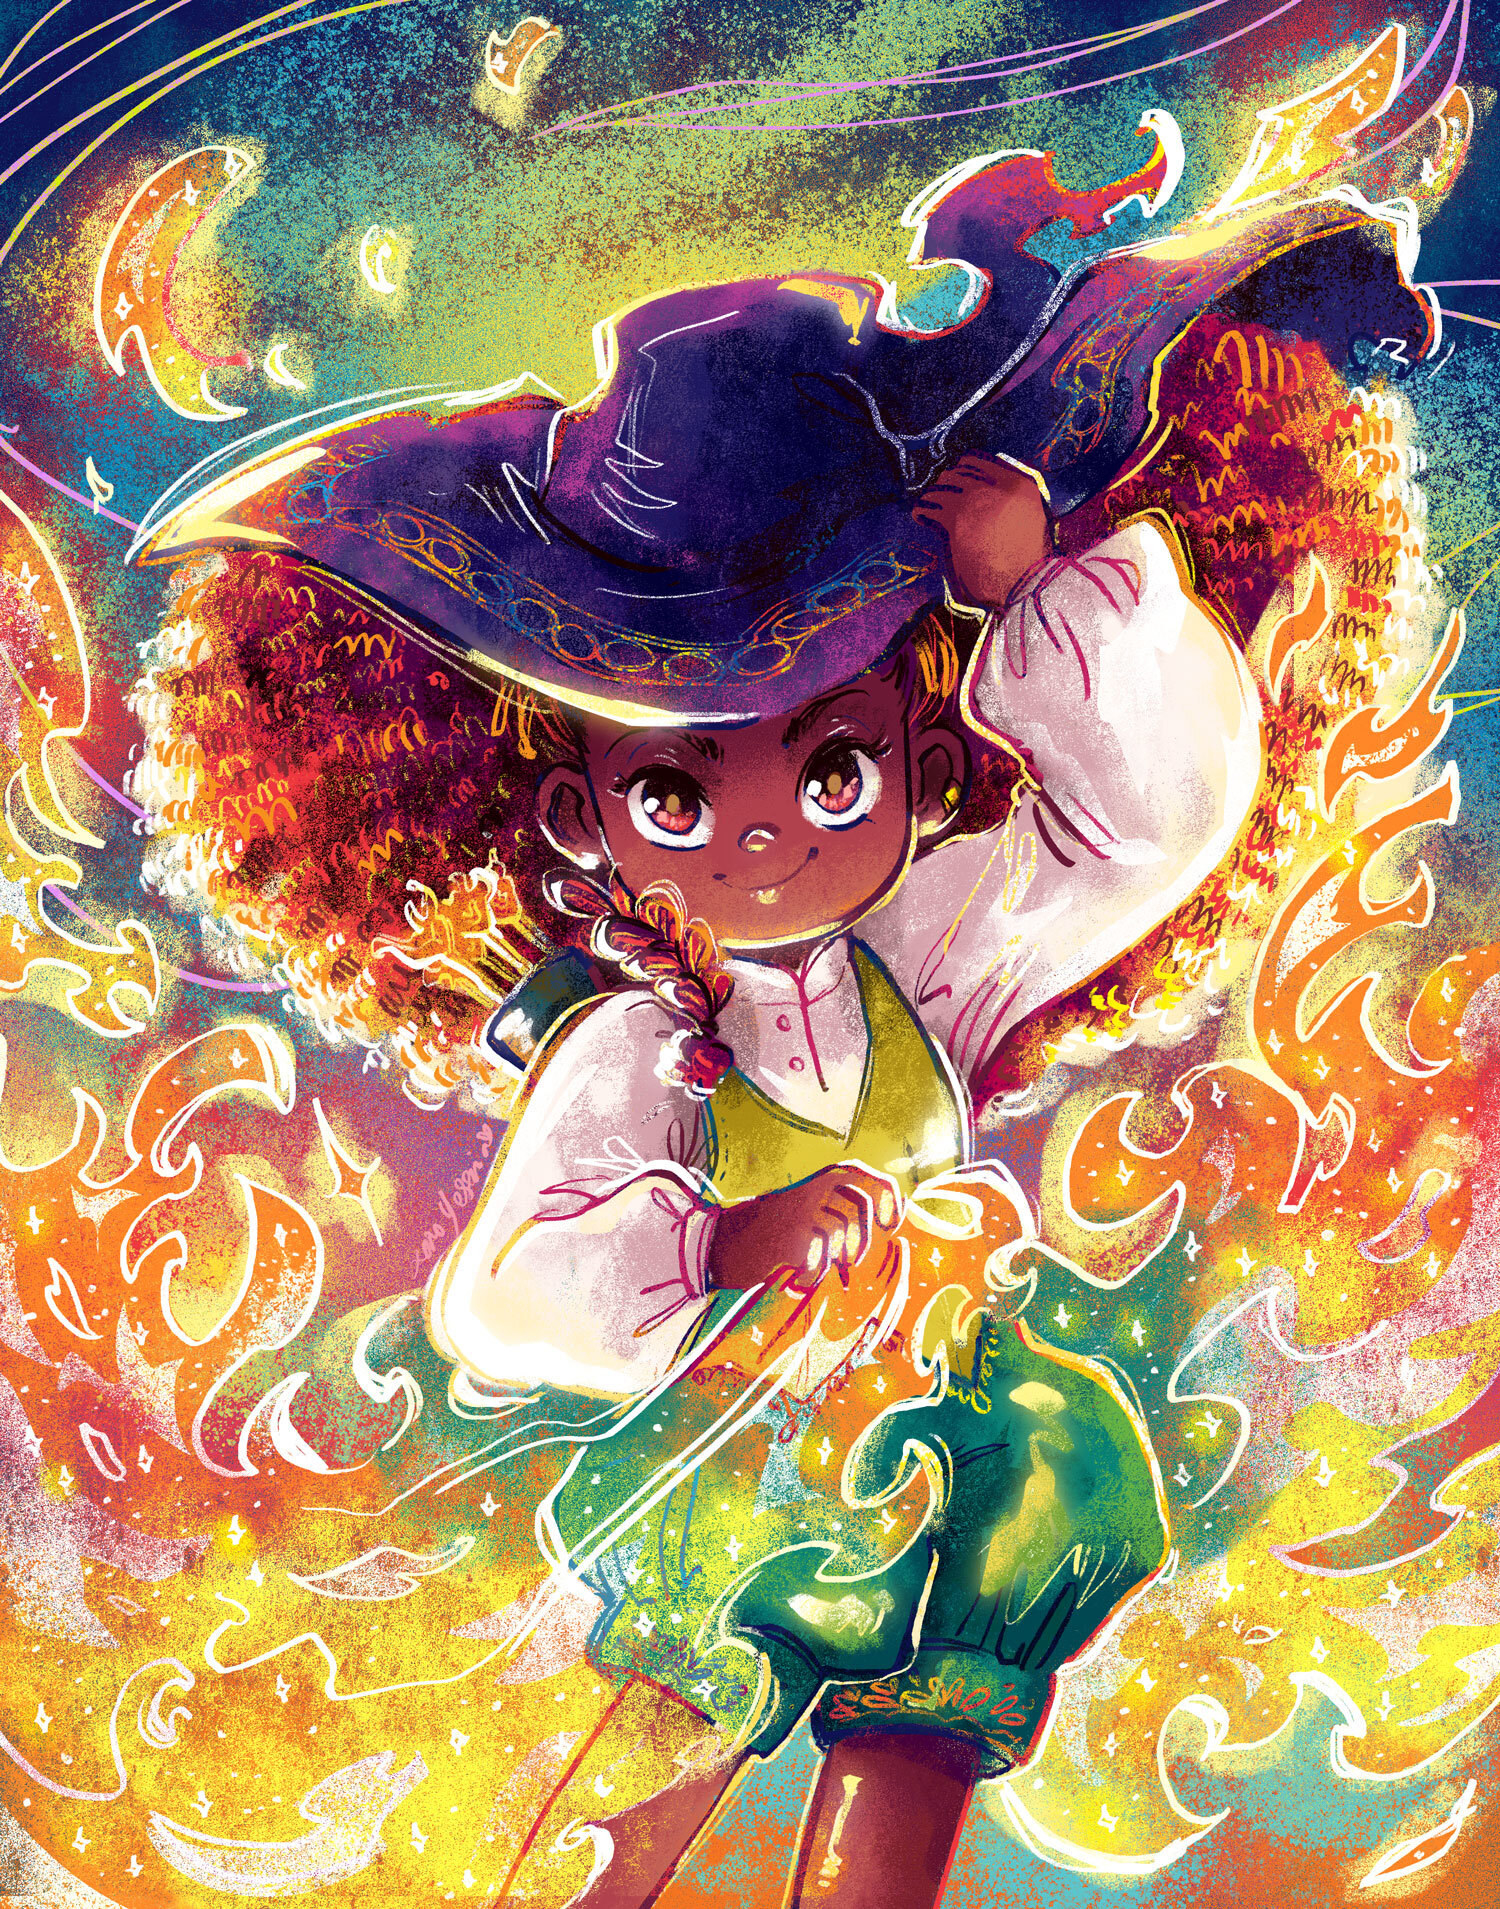 A young witch holding her hat and surrounded by flames